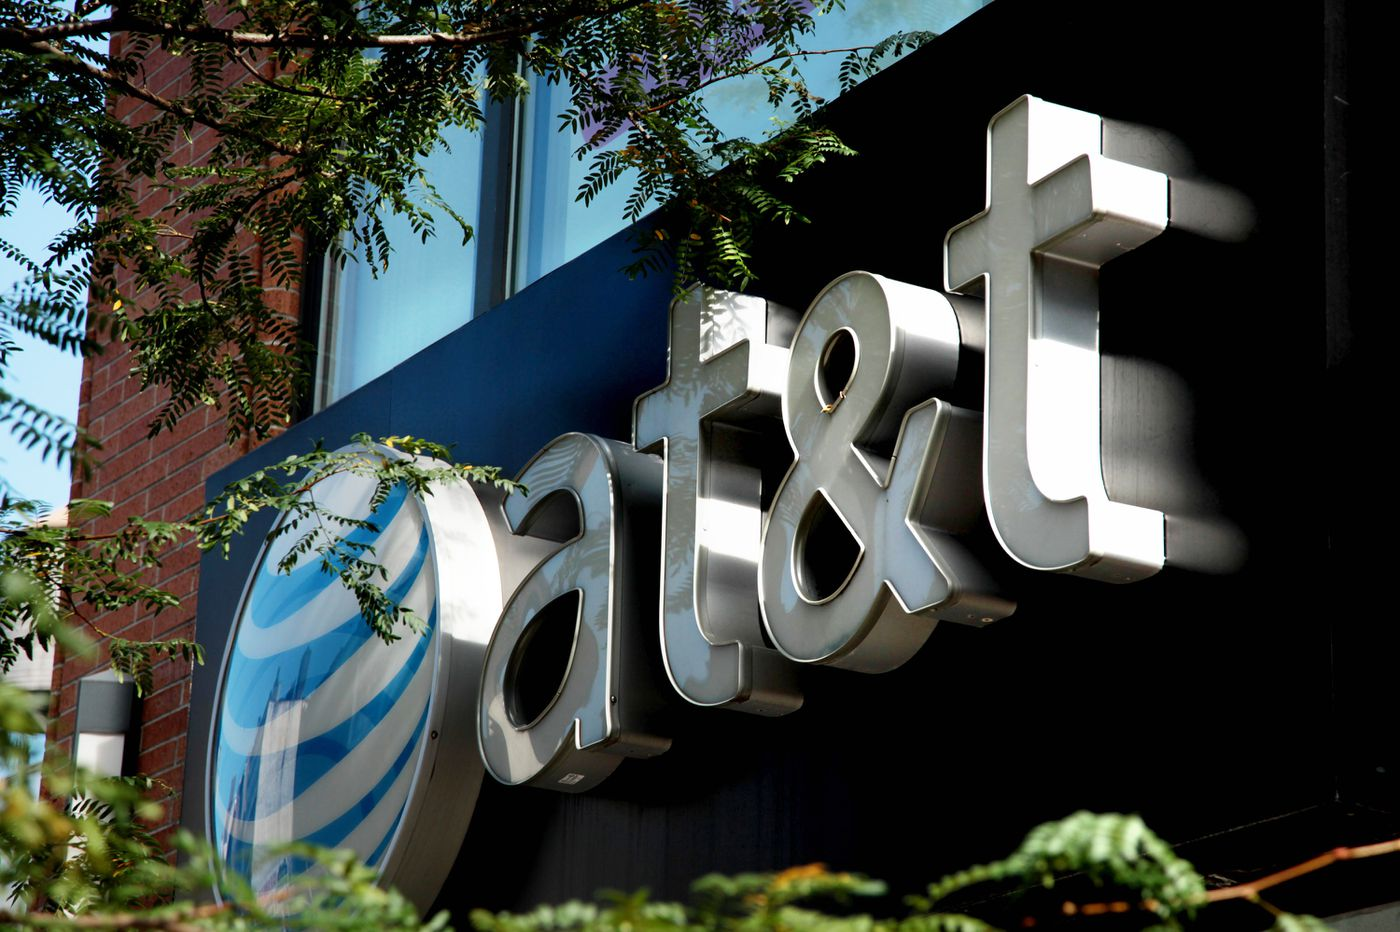 AT&T will stop selling location data amid calls for federal investigation